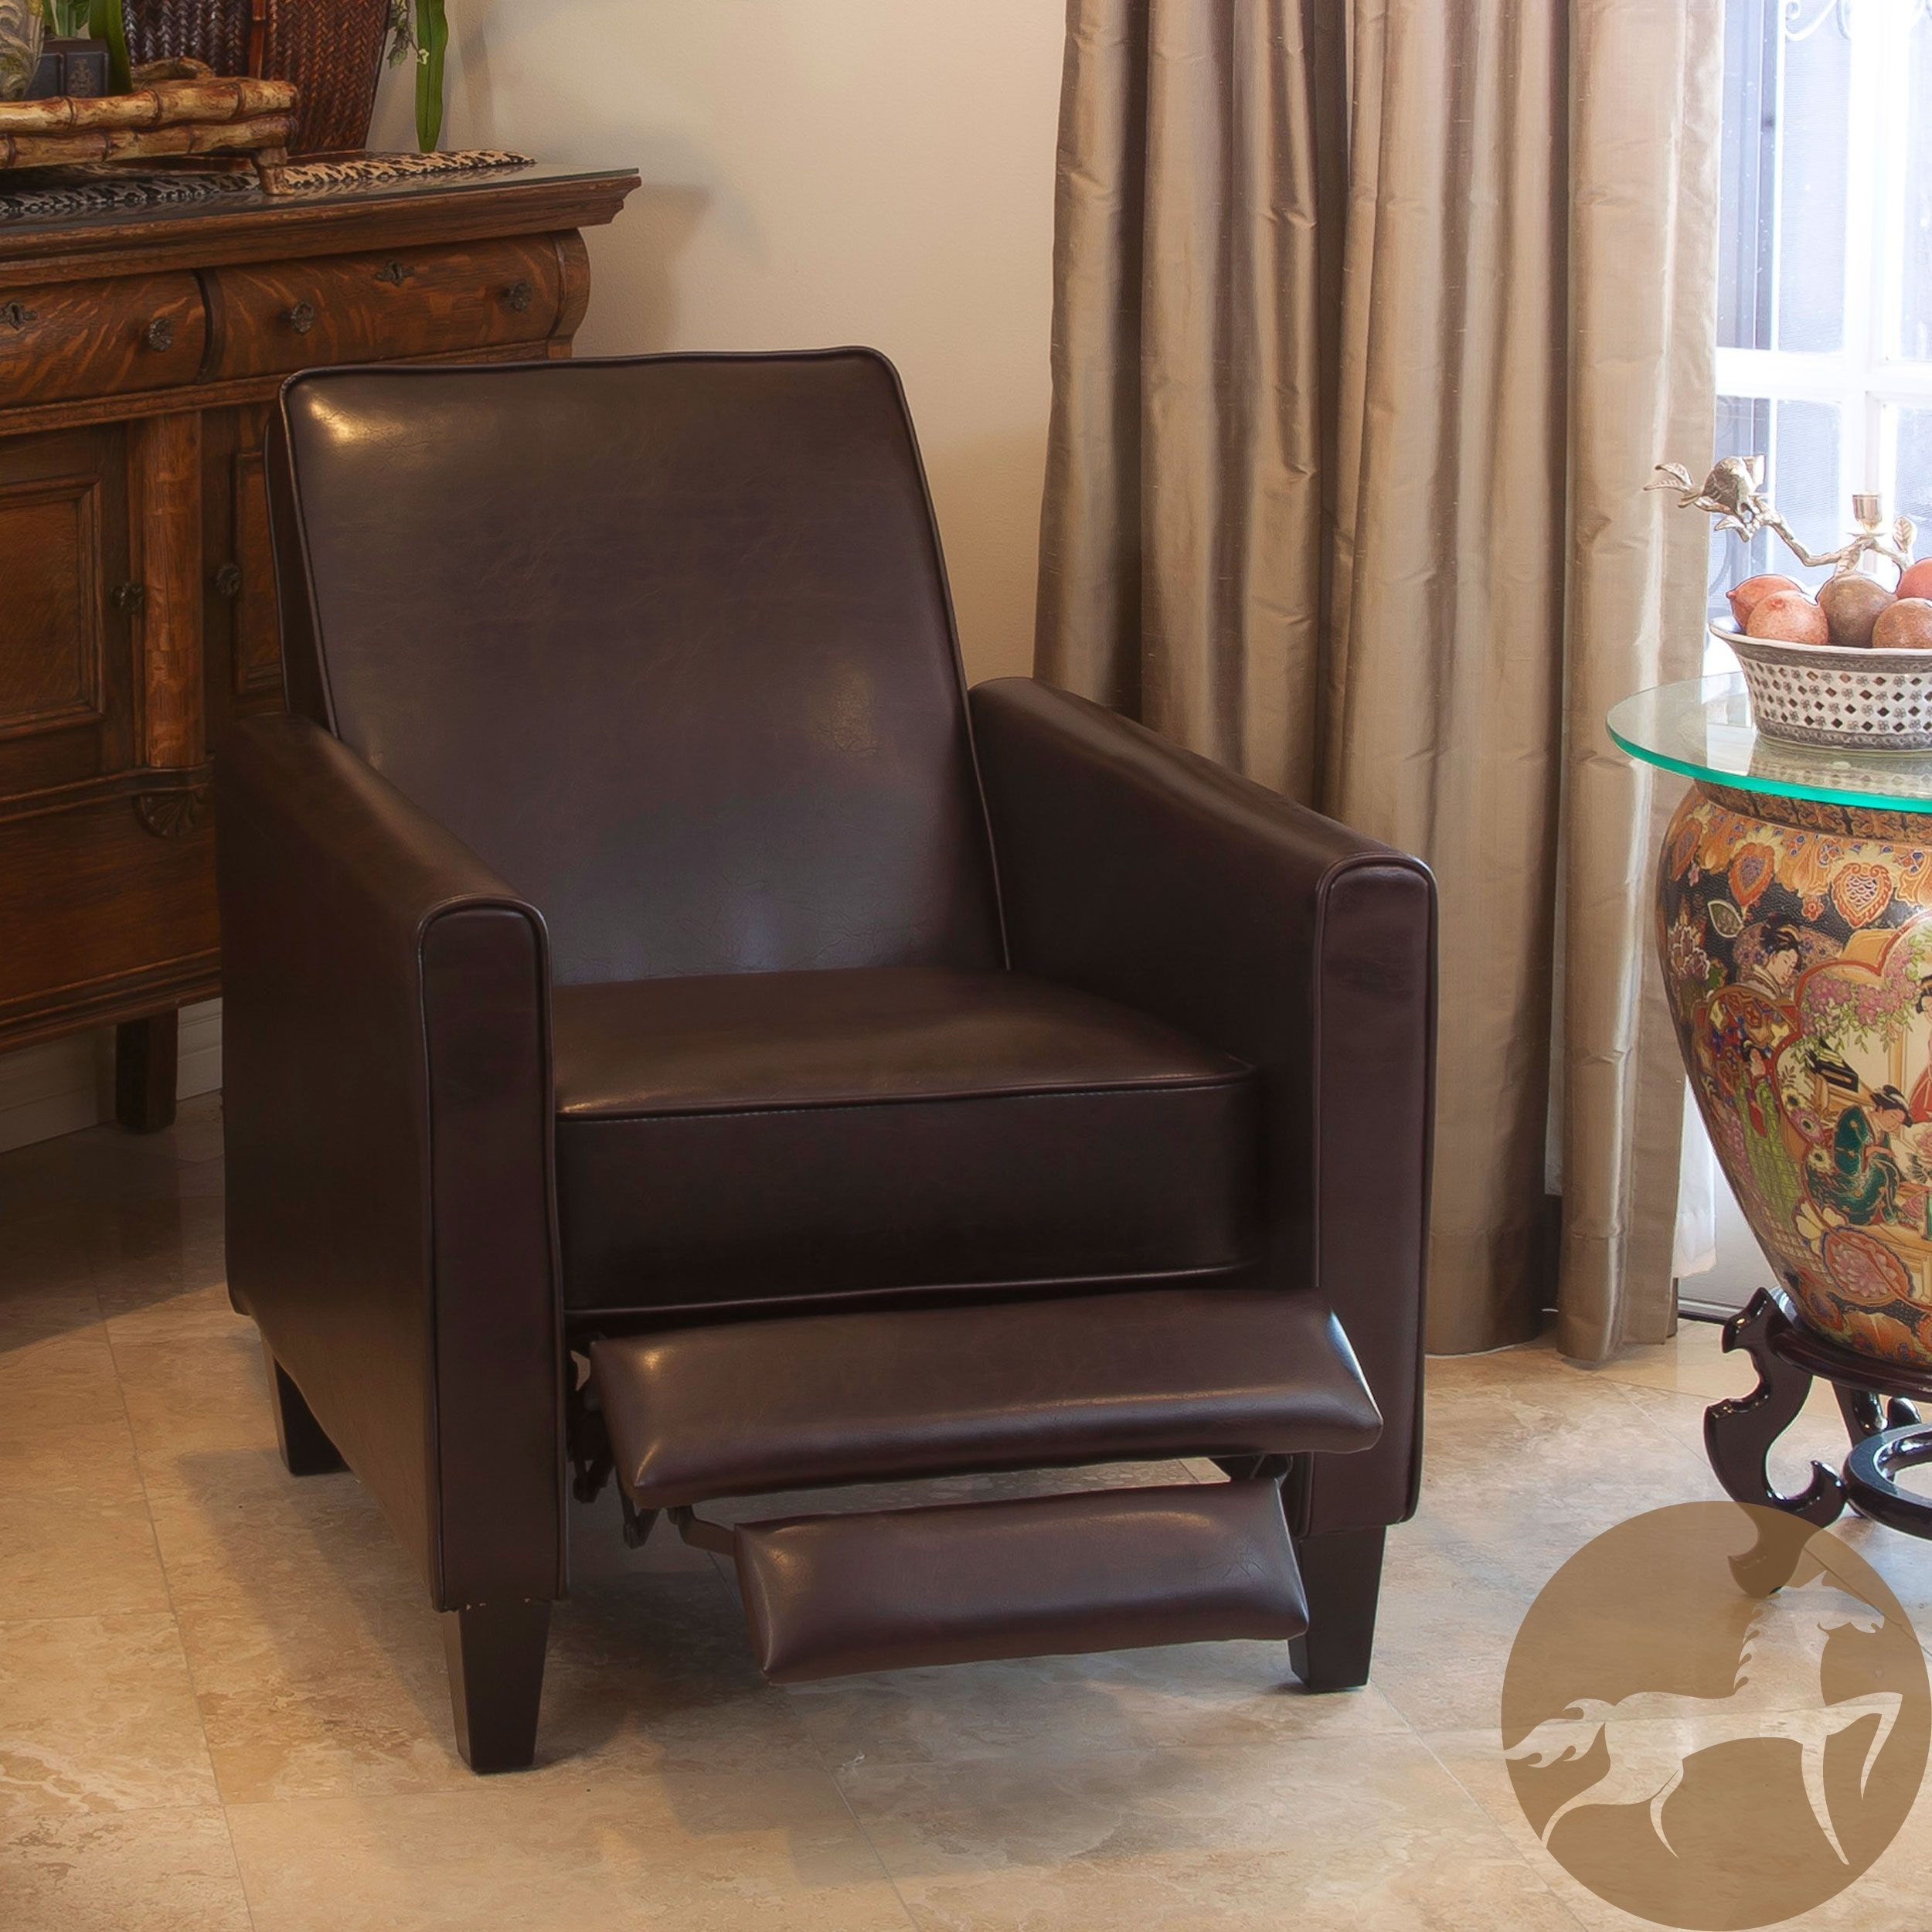 Christopher knight home leather recliner club chair 5 & Low Profile Recliners - Ideas on Foter